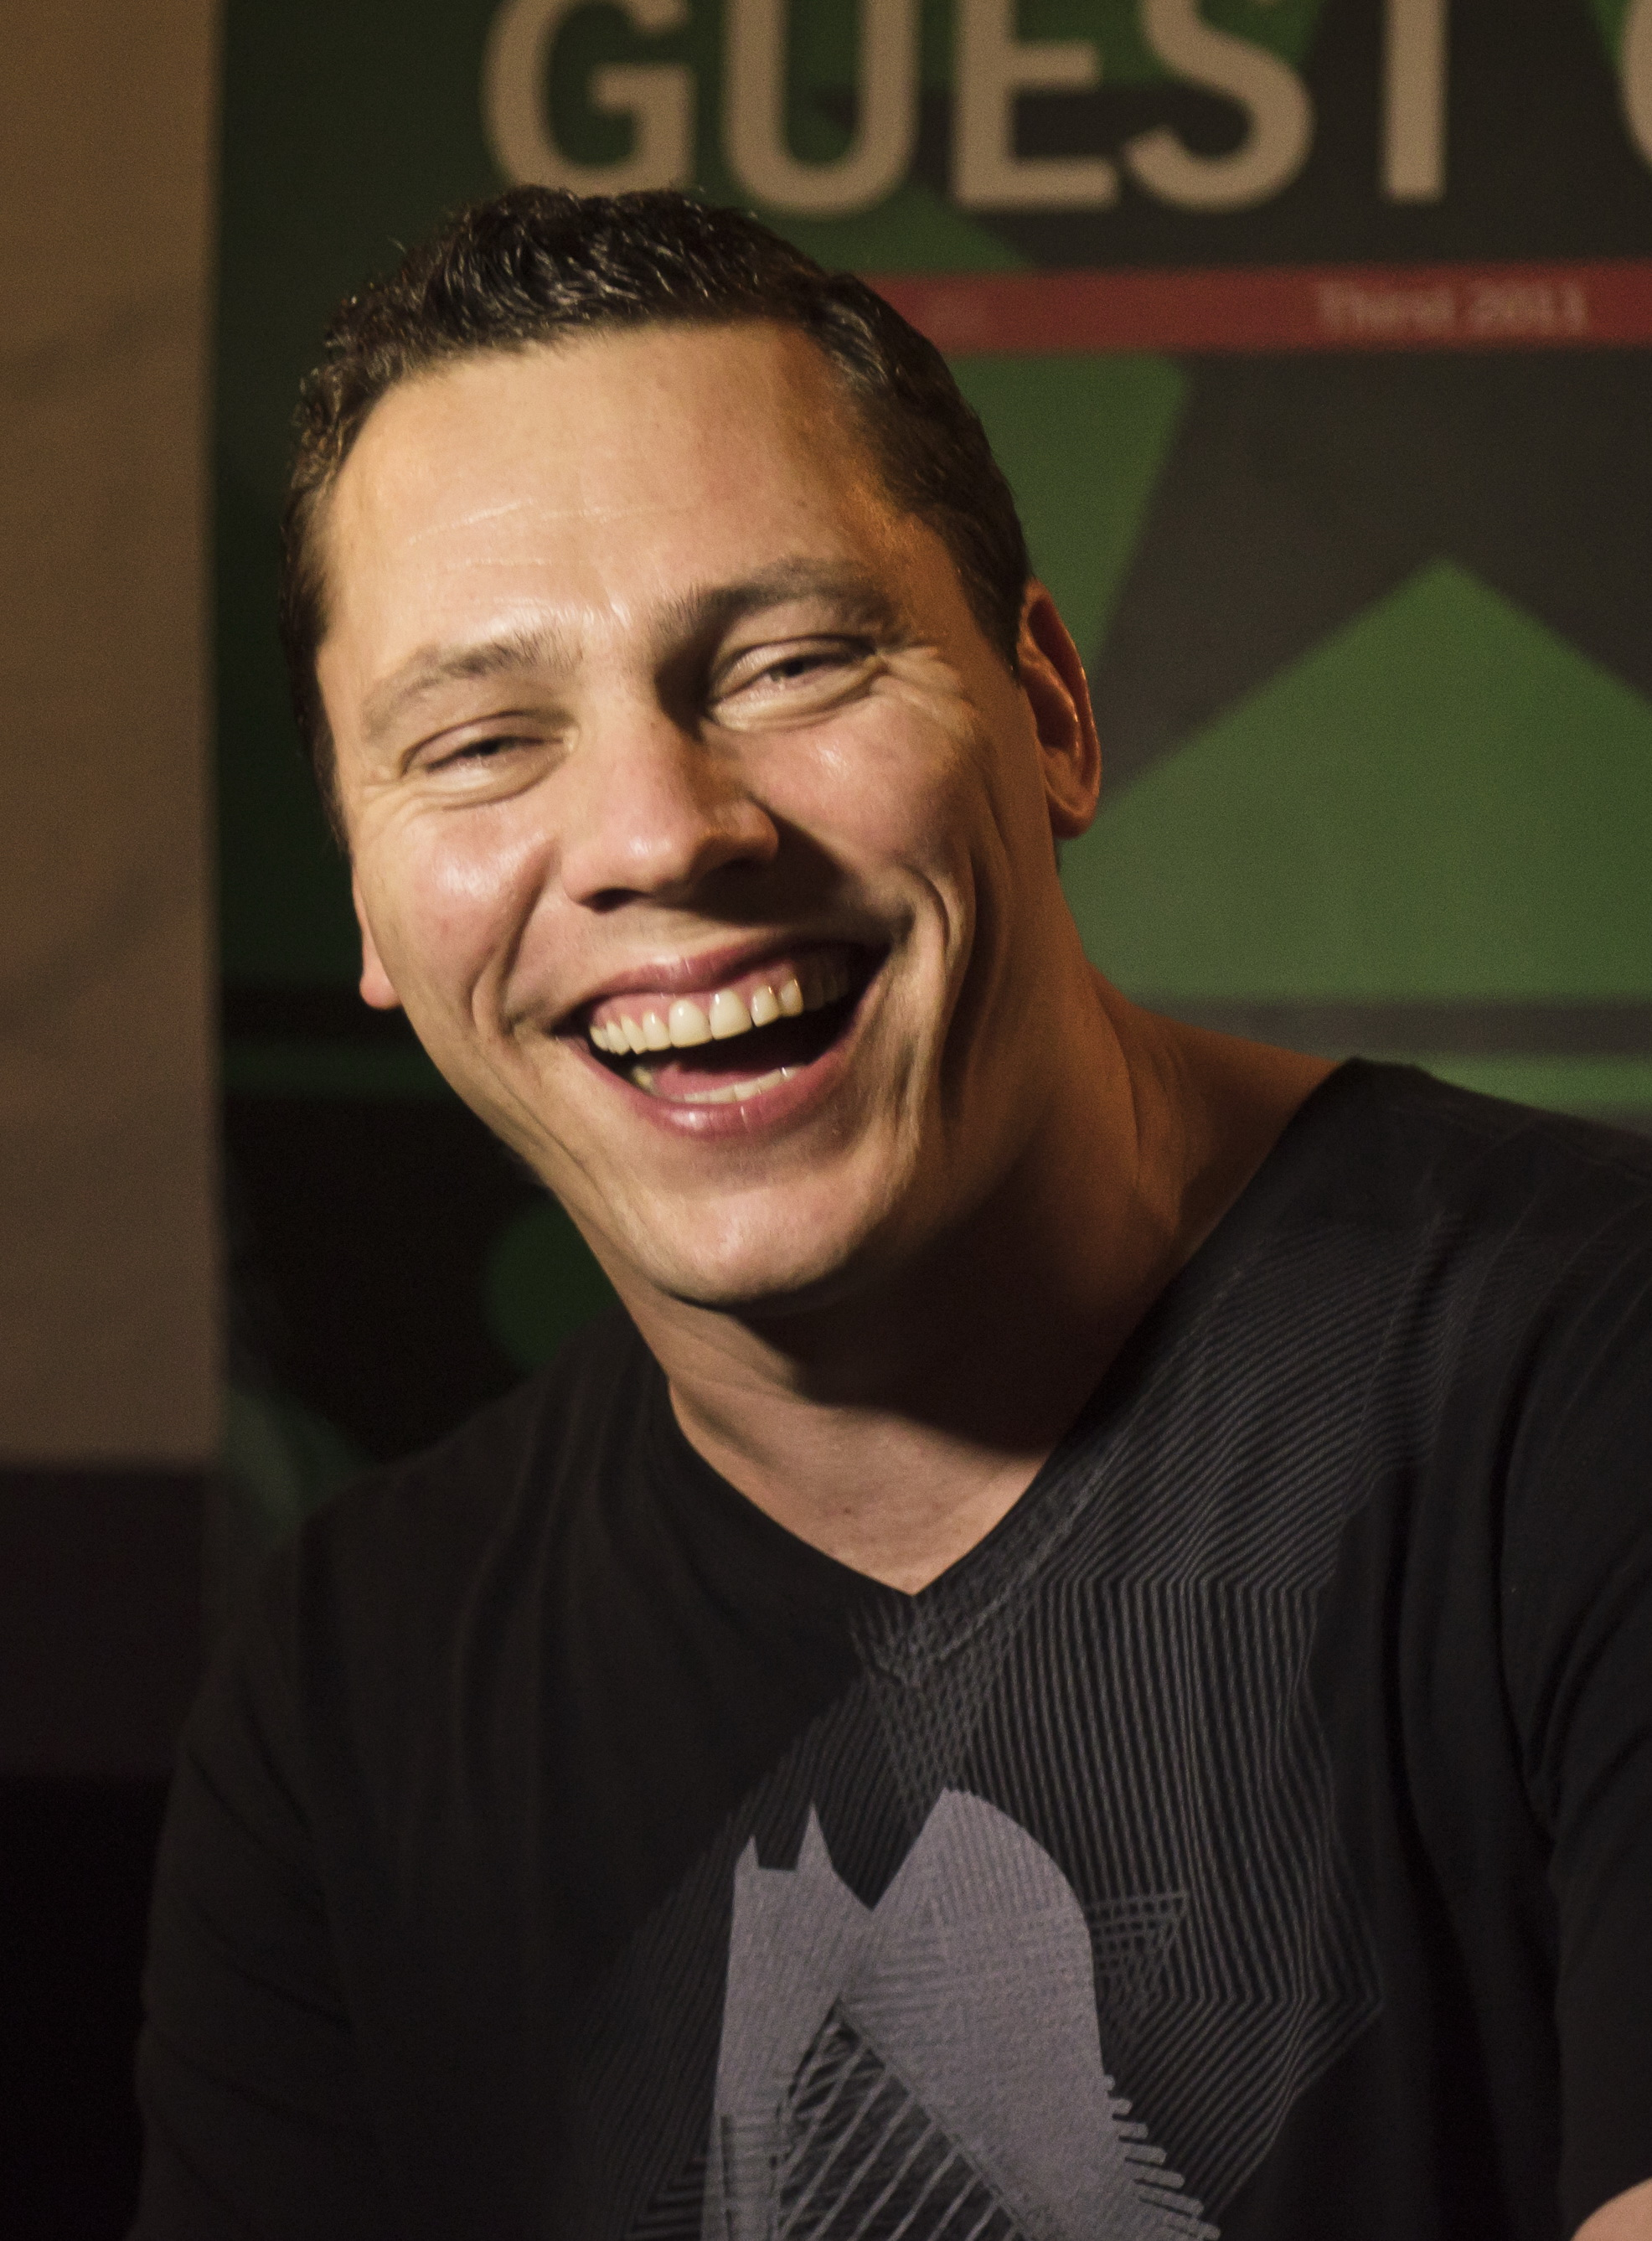 DJ Tiësto a gagné unknown un salaire d'un million de dollar, laissant fortune 75 million en date de 2018